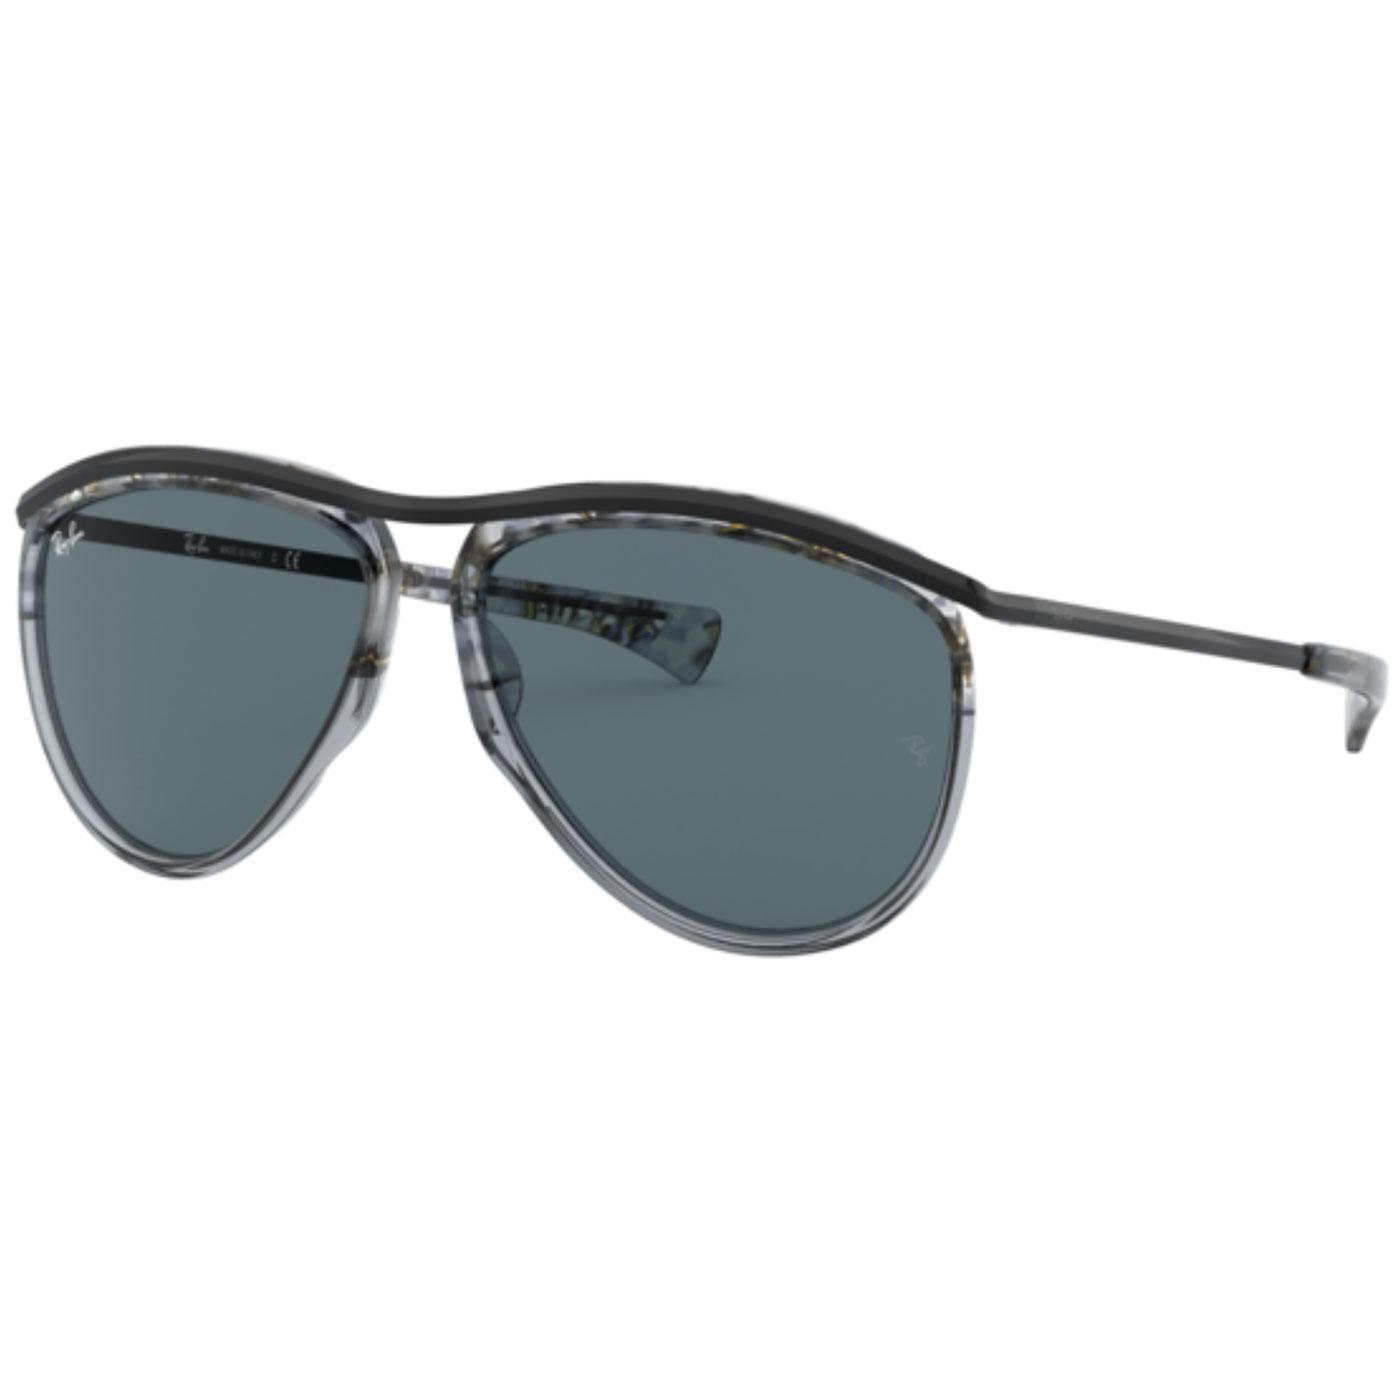 Olympian Aviator RAY-BAN Sunglasses (Havana Grey)